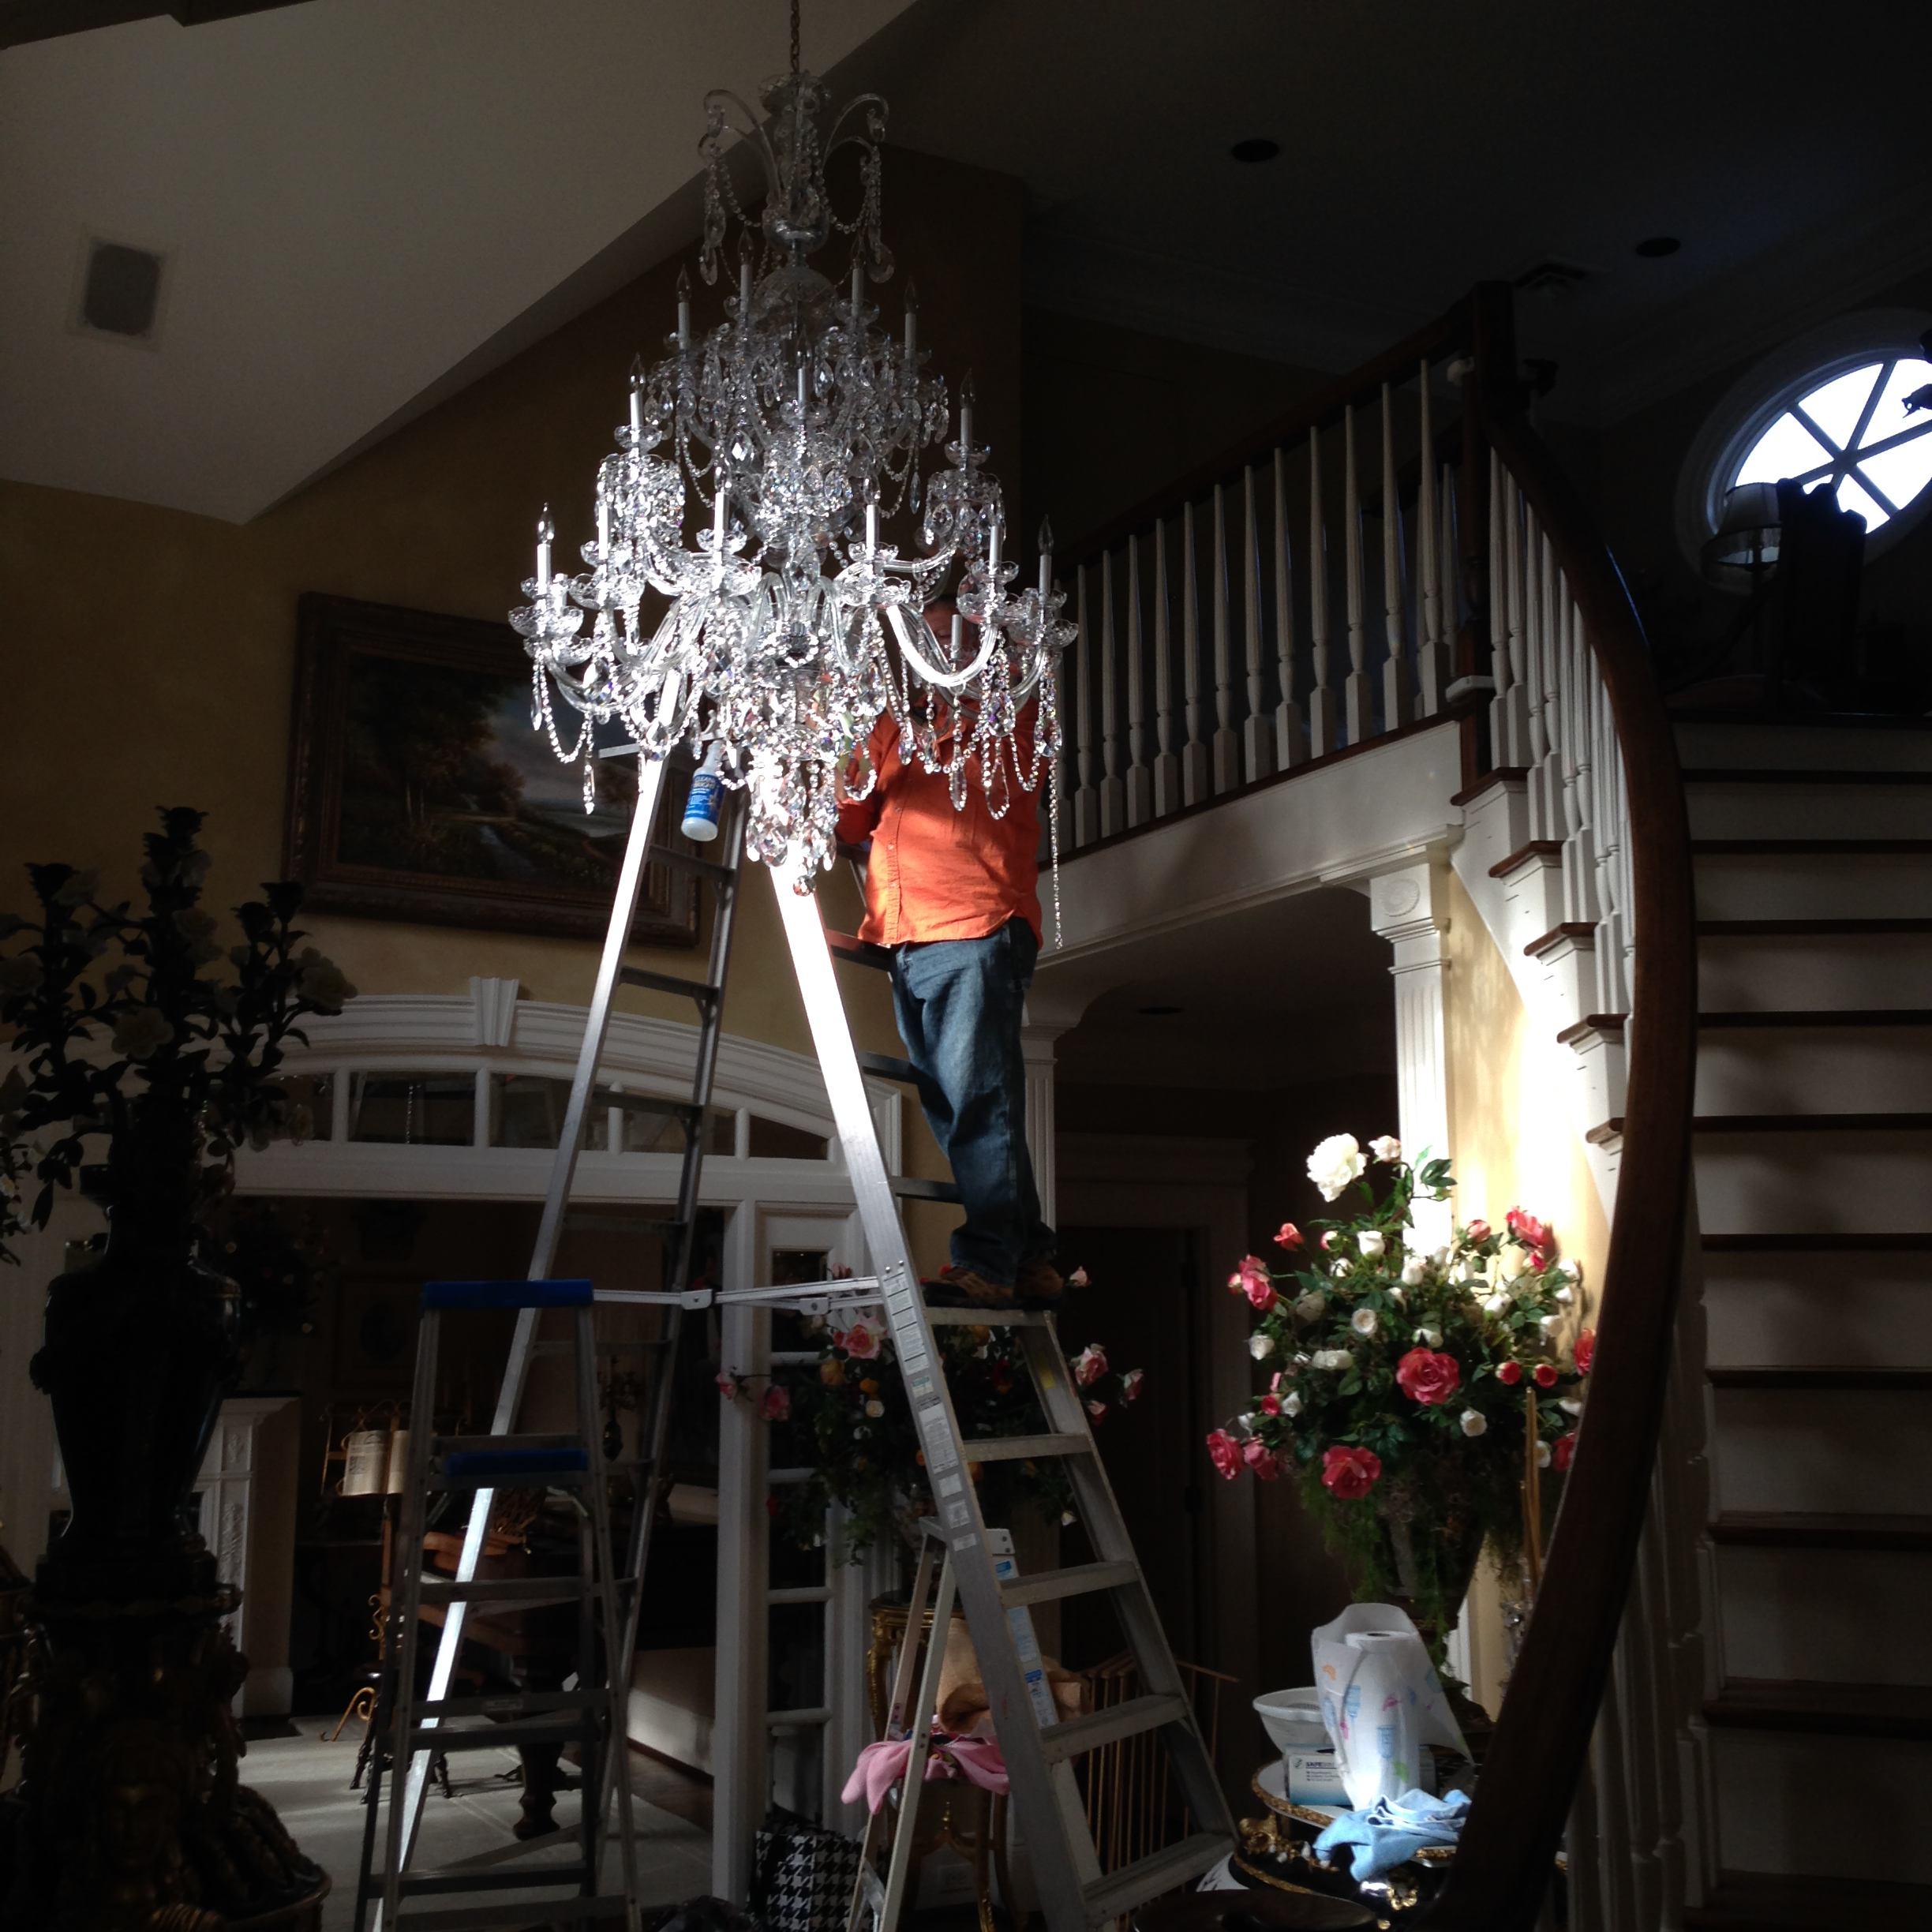 Chandelier Cleaning – Crystal Chandelier Cleaning